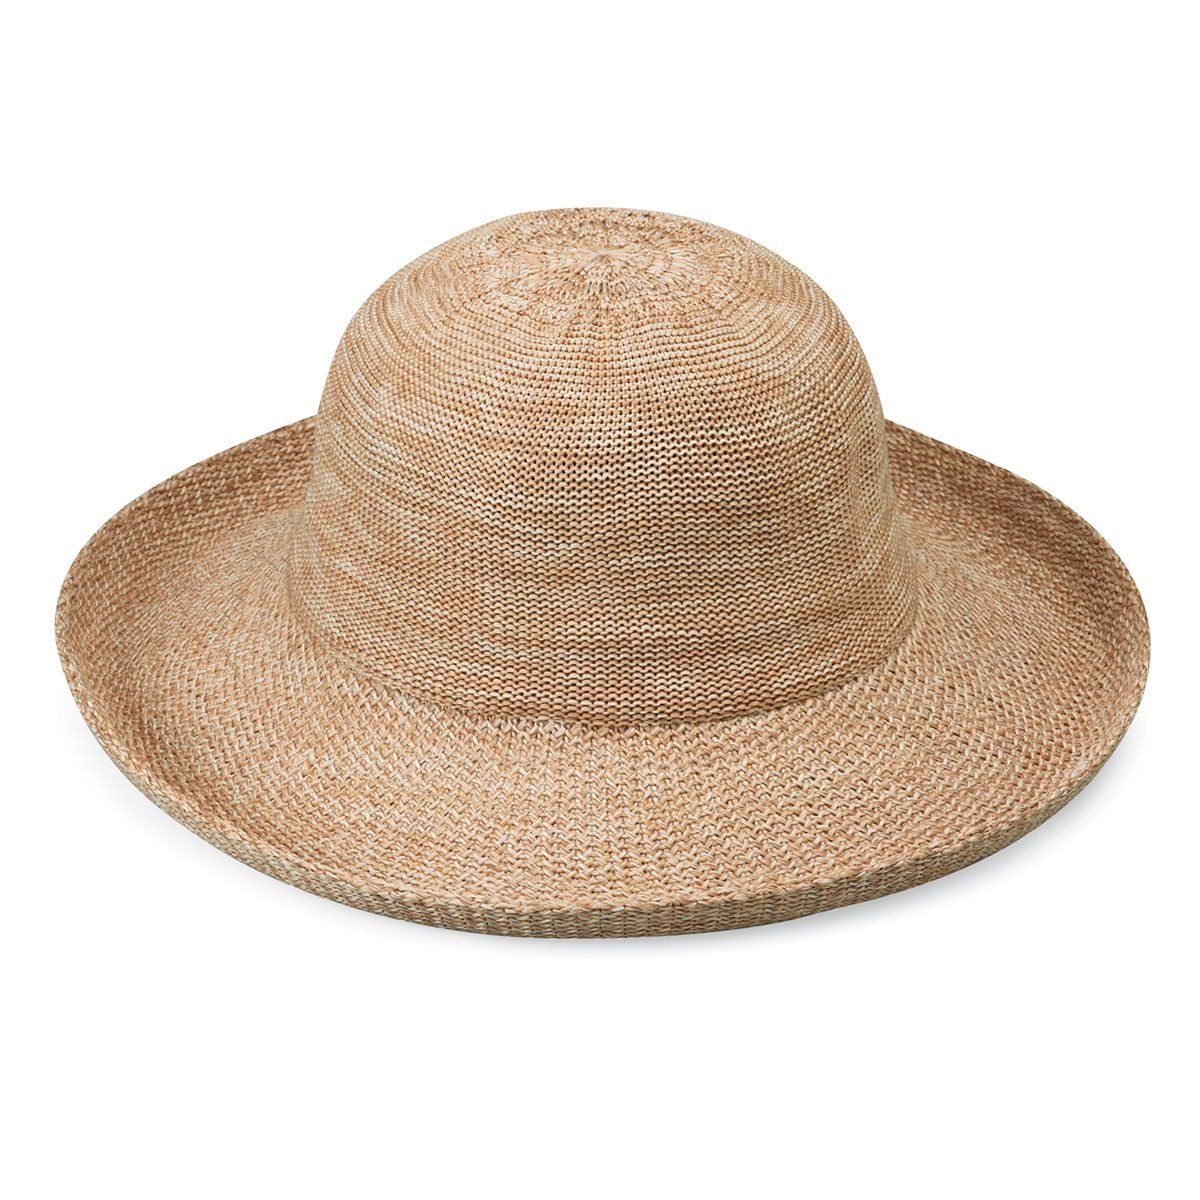 Great stylish straw hat sun protection 05524fbd7a0